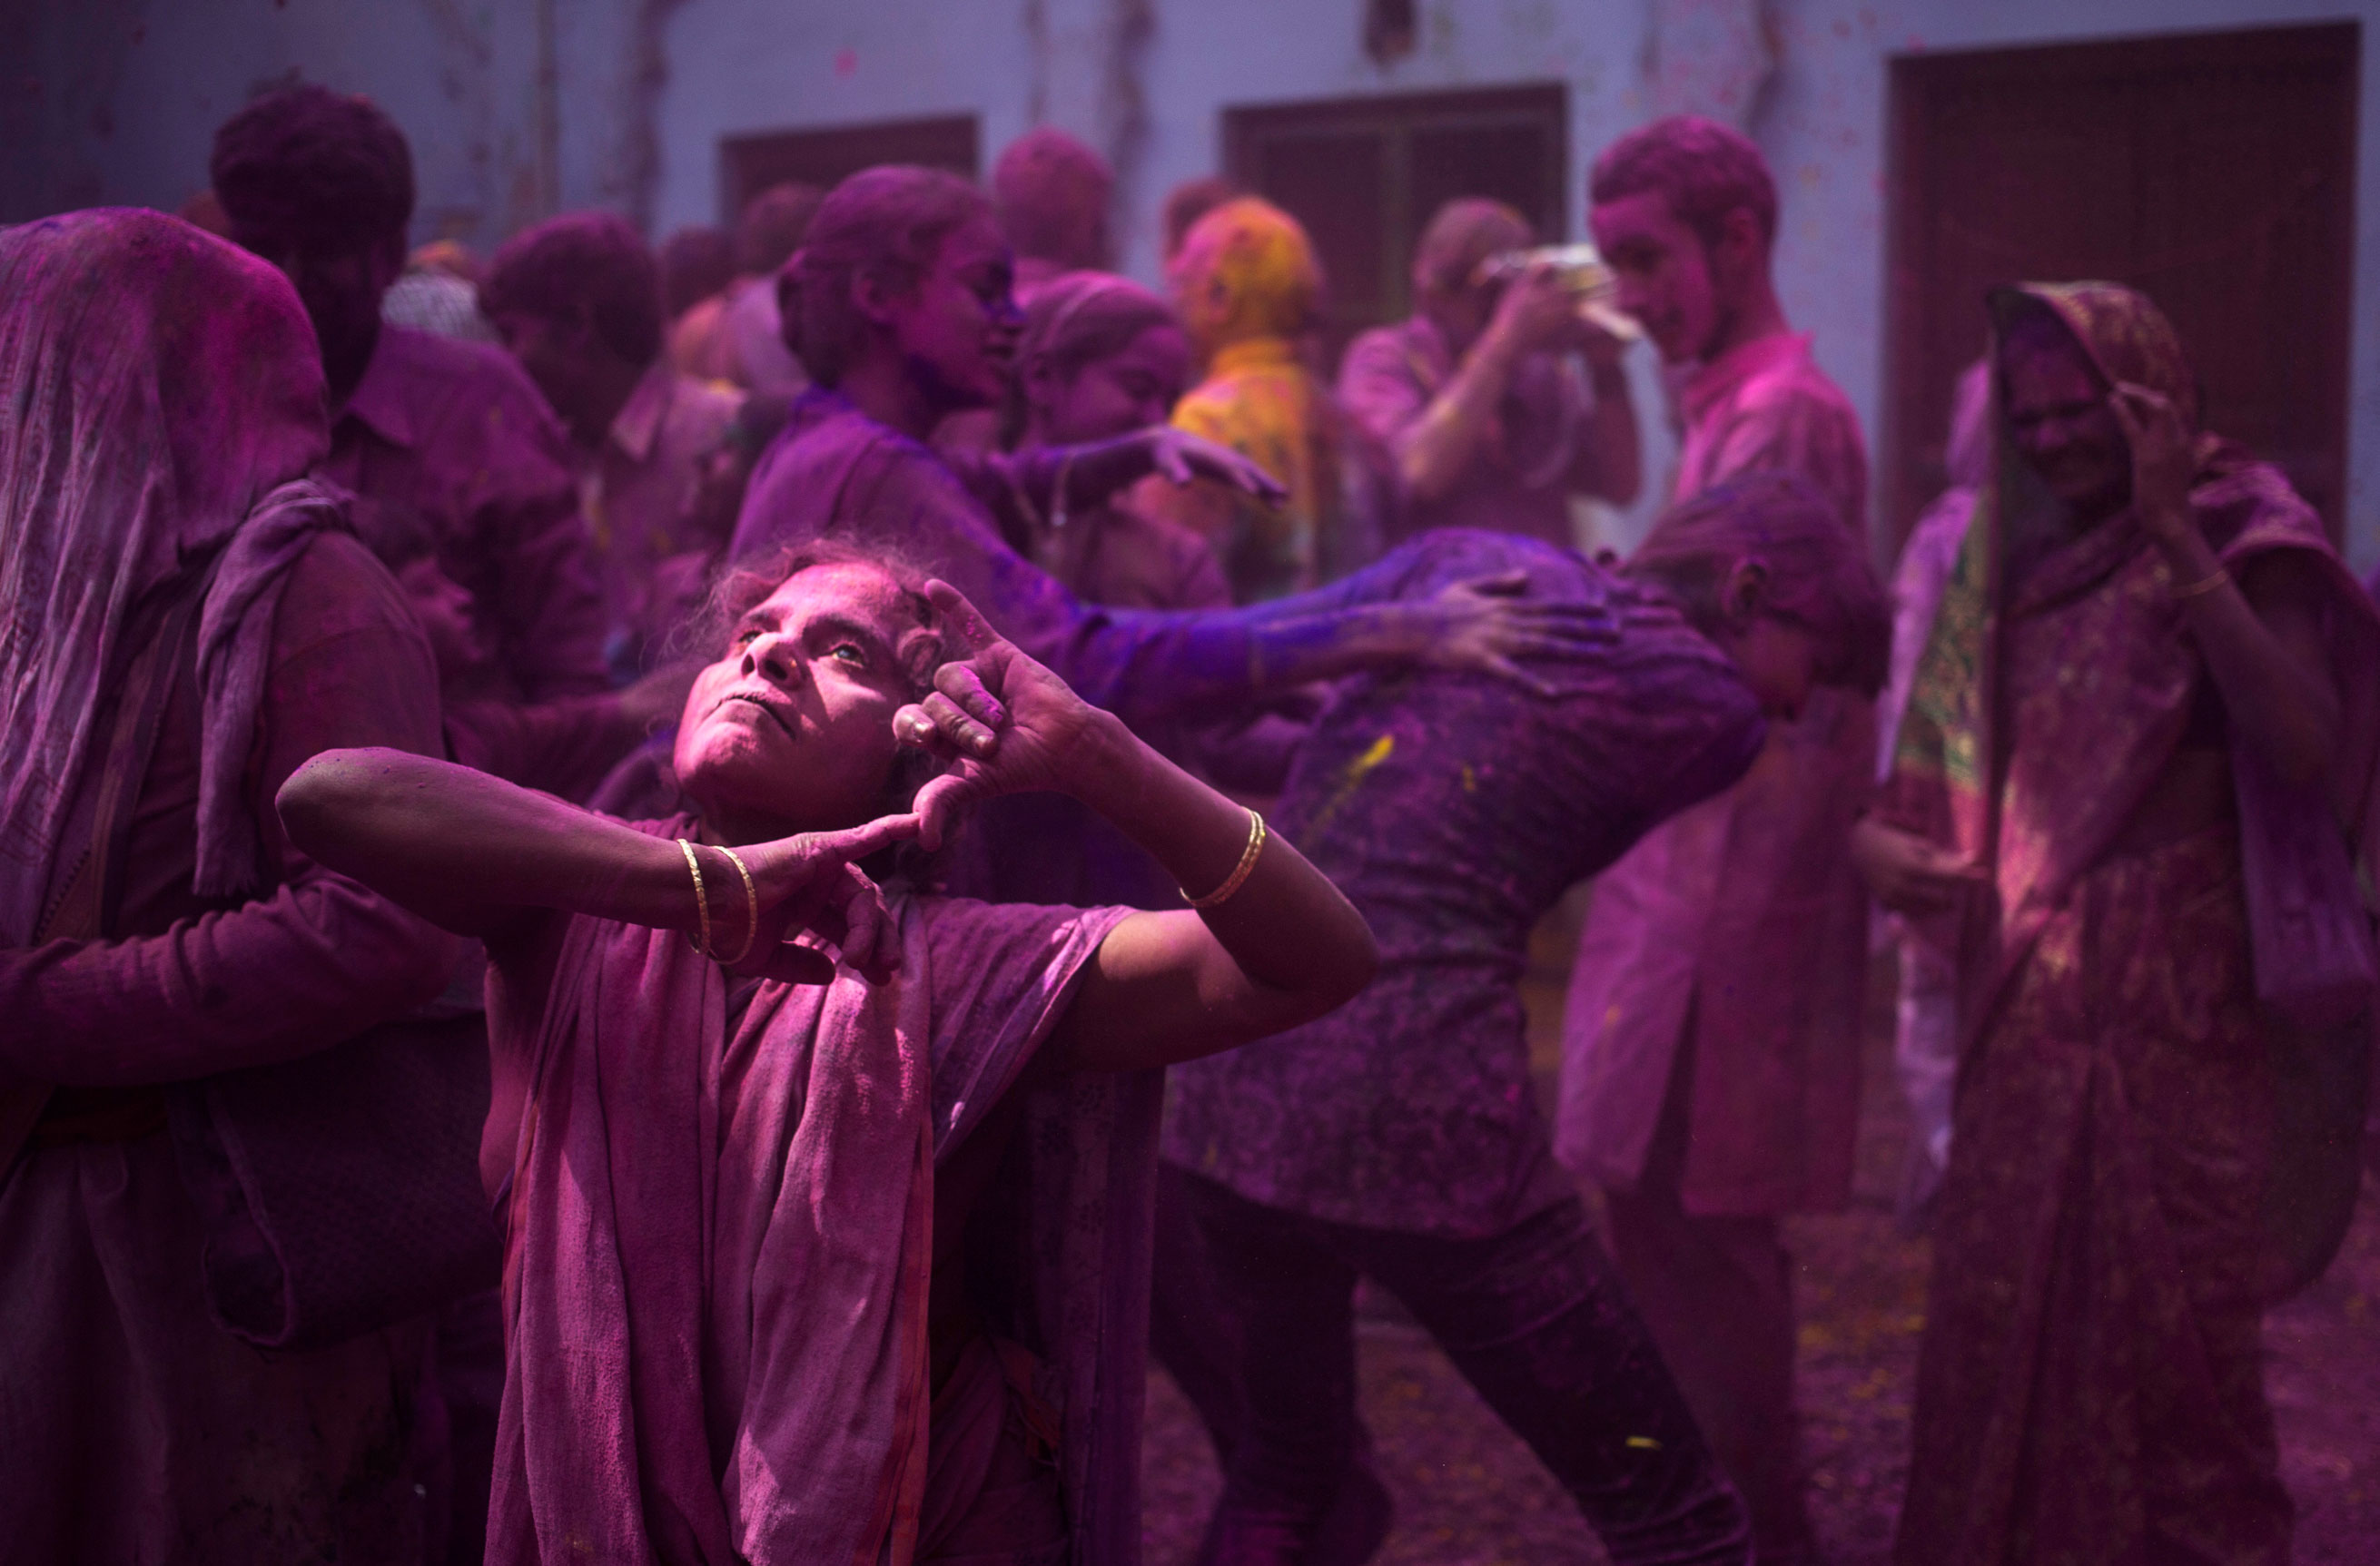 Indian Hindu widows and others play with colored powder as part of Holi celebrations at the  Meera Sahabhagini Widow Ashram in Vrindavan, on March 3, 2015.